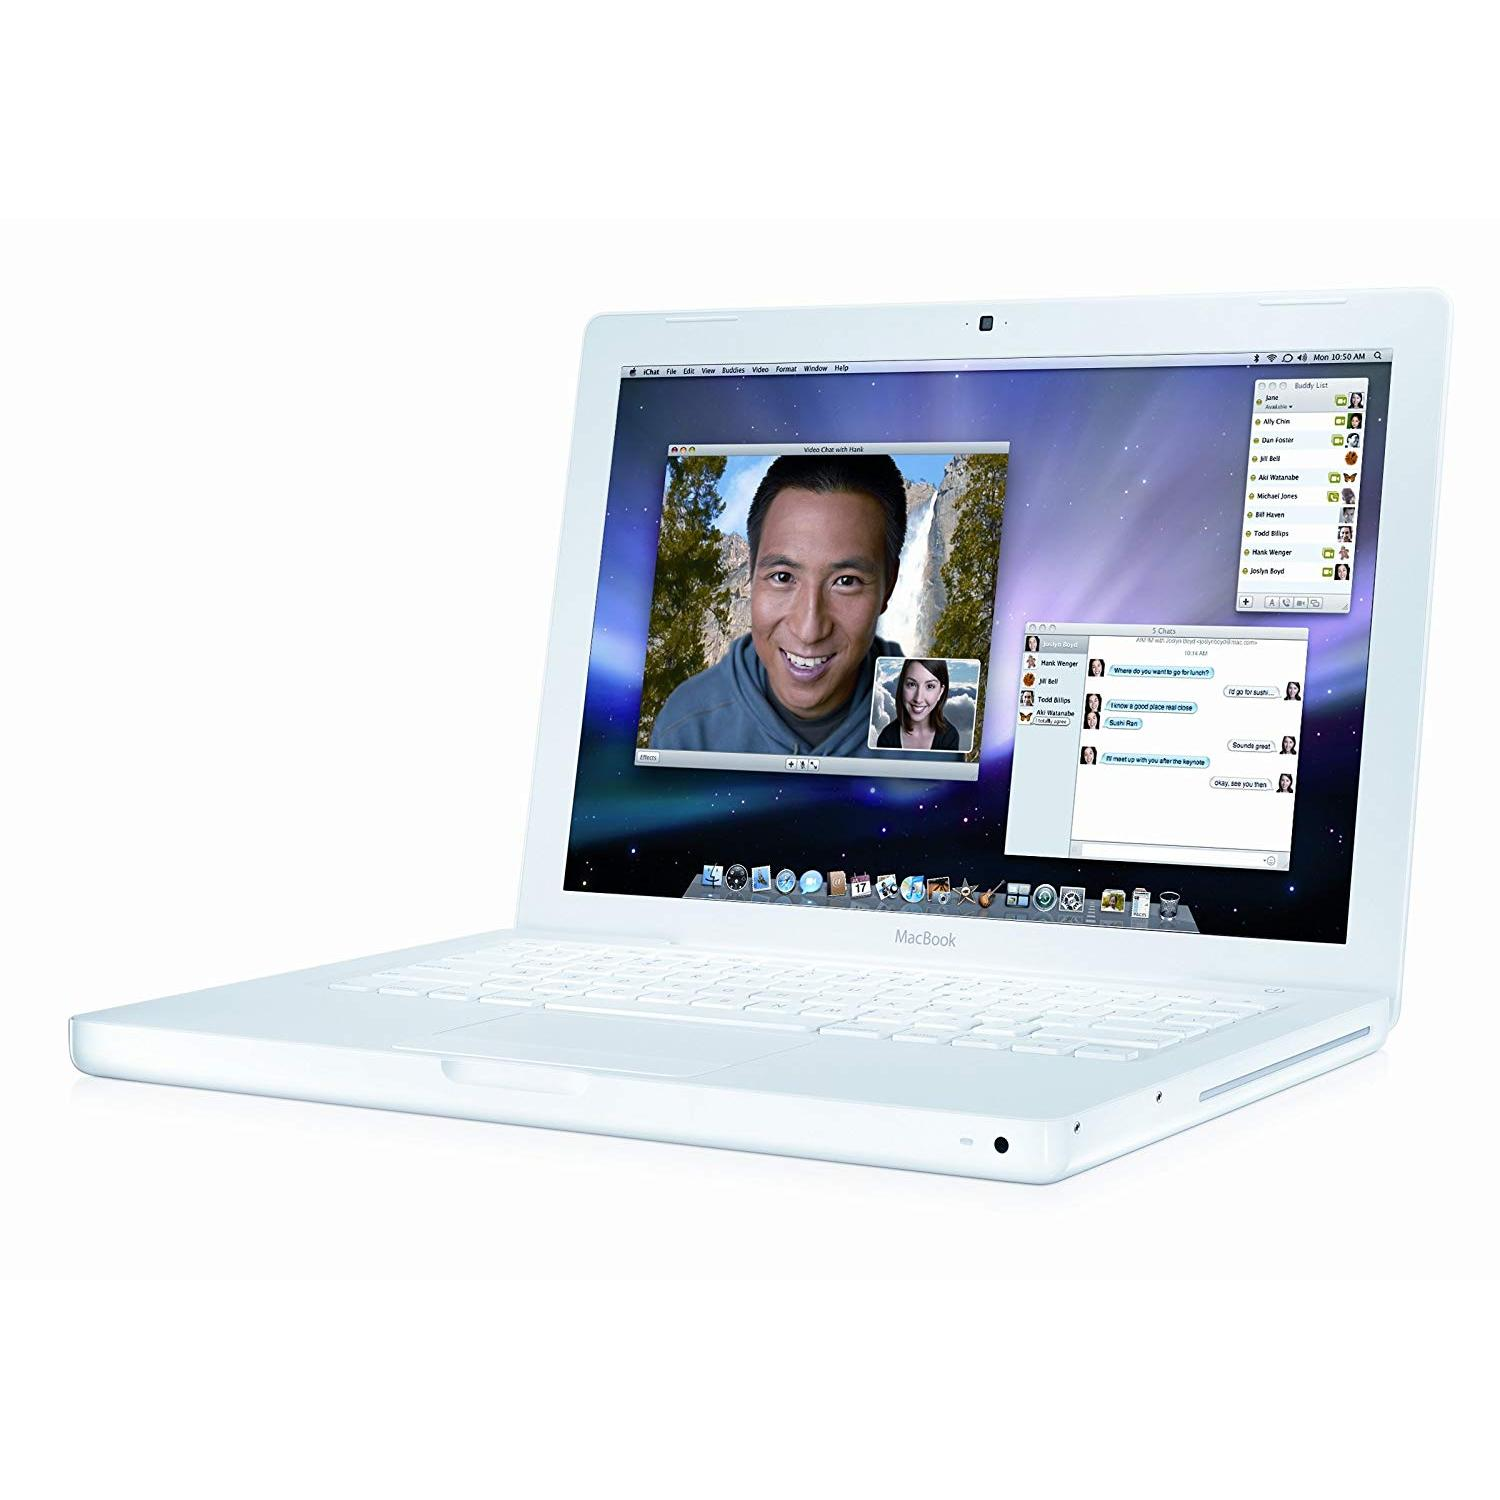 MacBook 13.3-inch (2009) - Core 2 Duo - 4GB - HDD 1 TB QWERTY